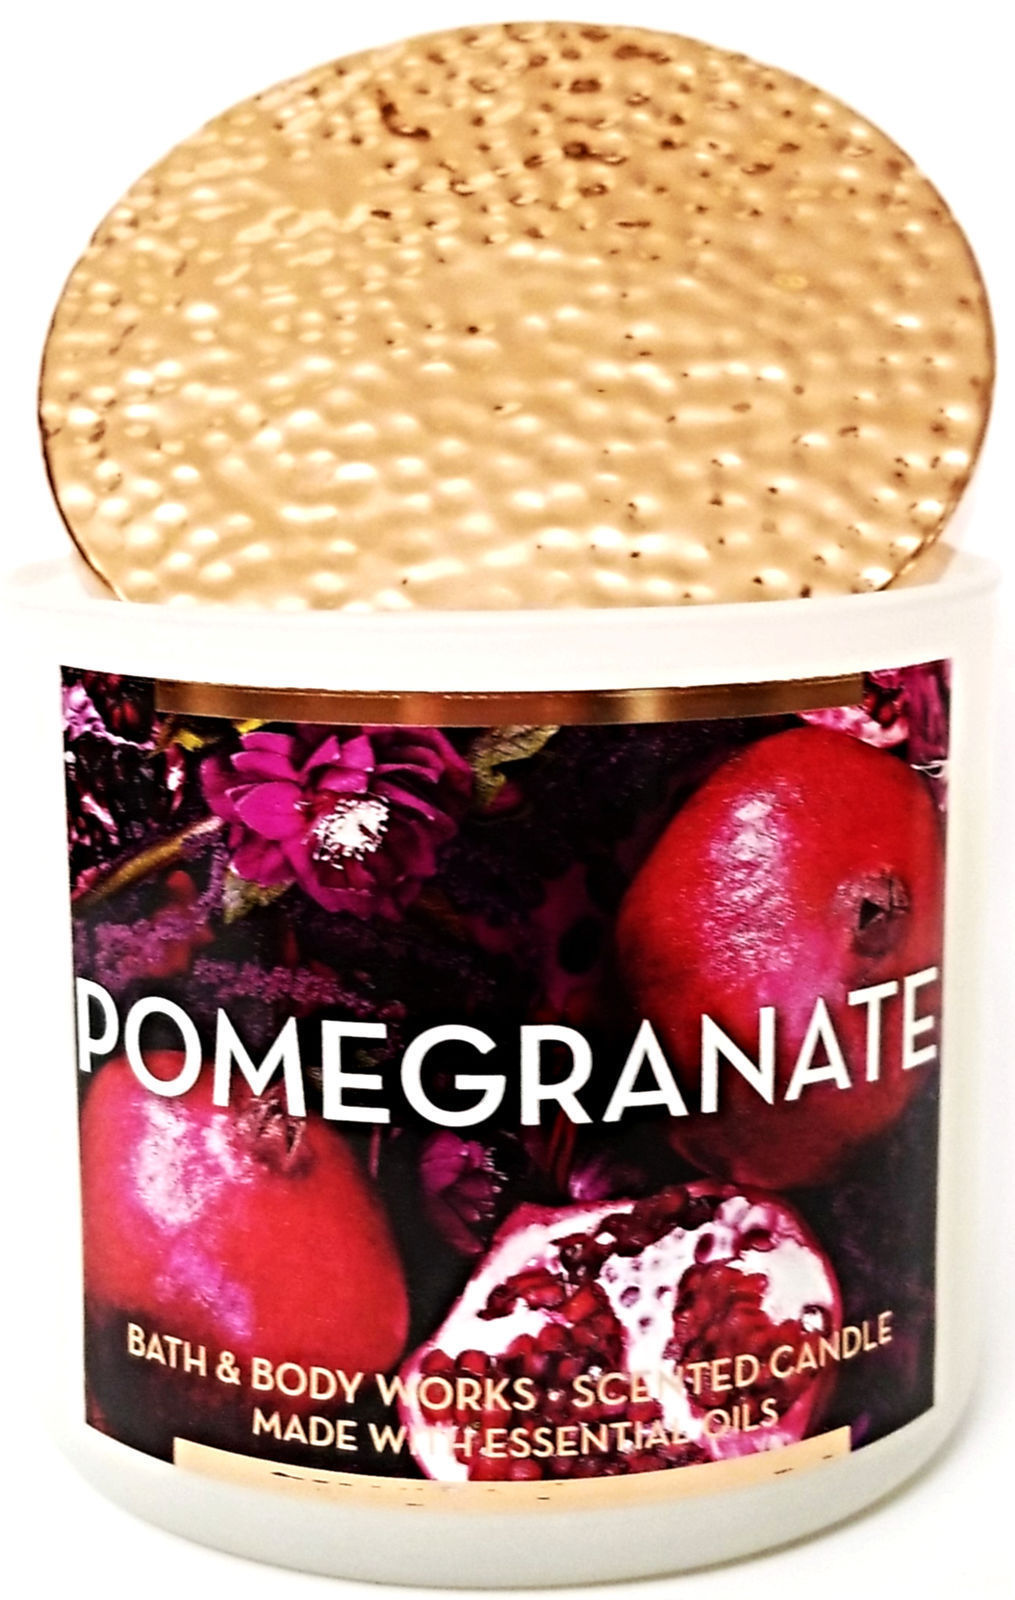 Bath & Body Works Pomegranate Large 3 Wick Candle Cooper Lid 14.5 oz Limited Ed image 3